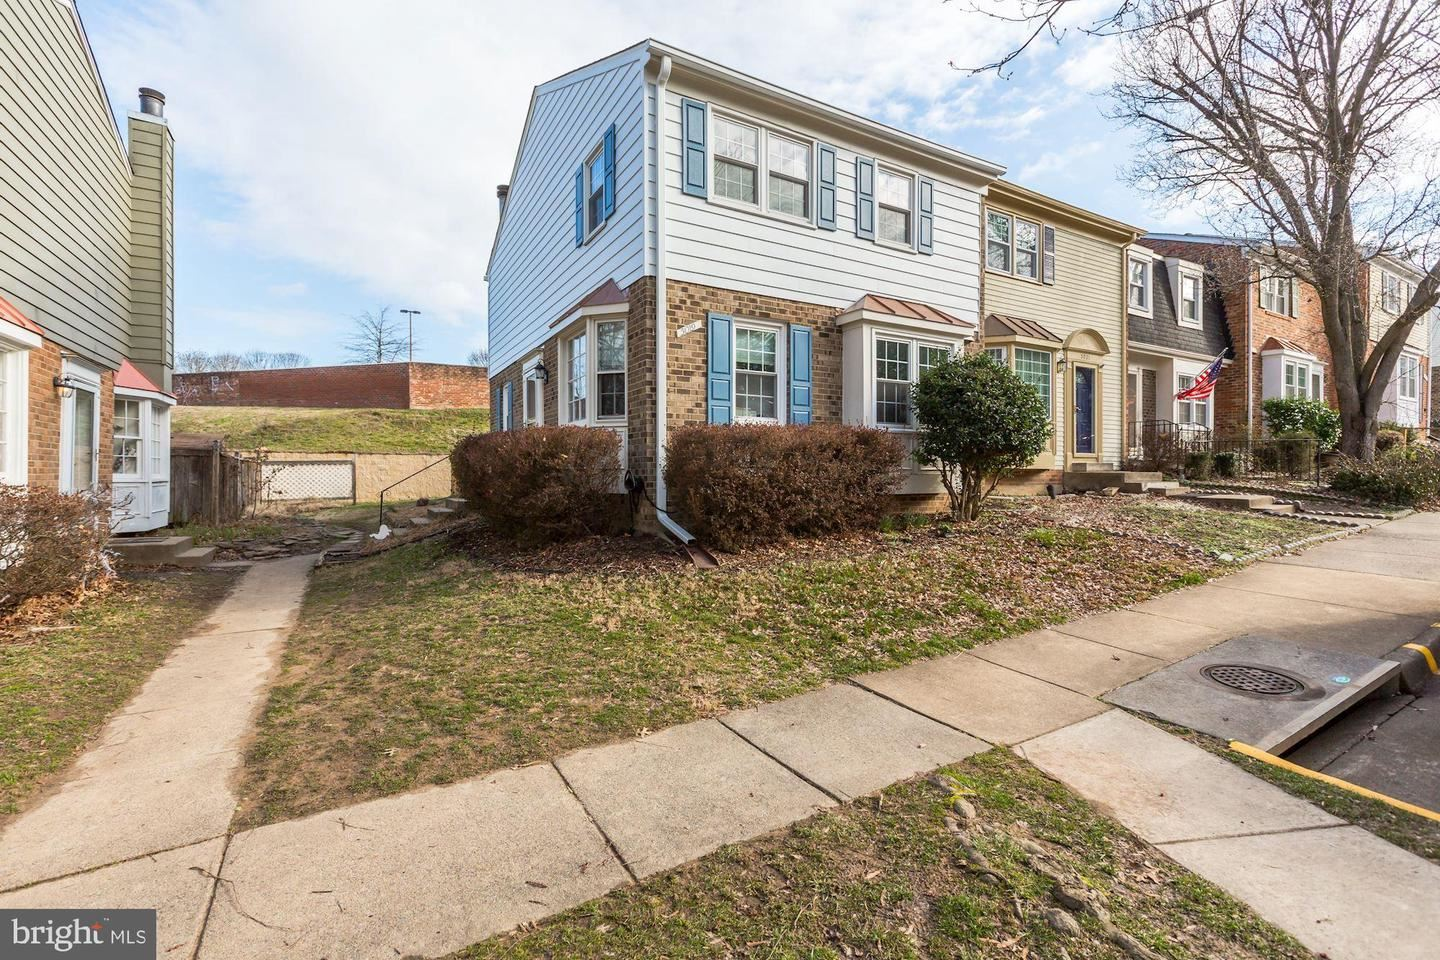 Photo of 5019 MCFARLAND DR, FAIRFAX, VA 22032 (MLS # VAFX1111704)